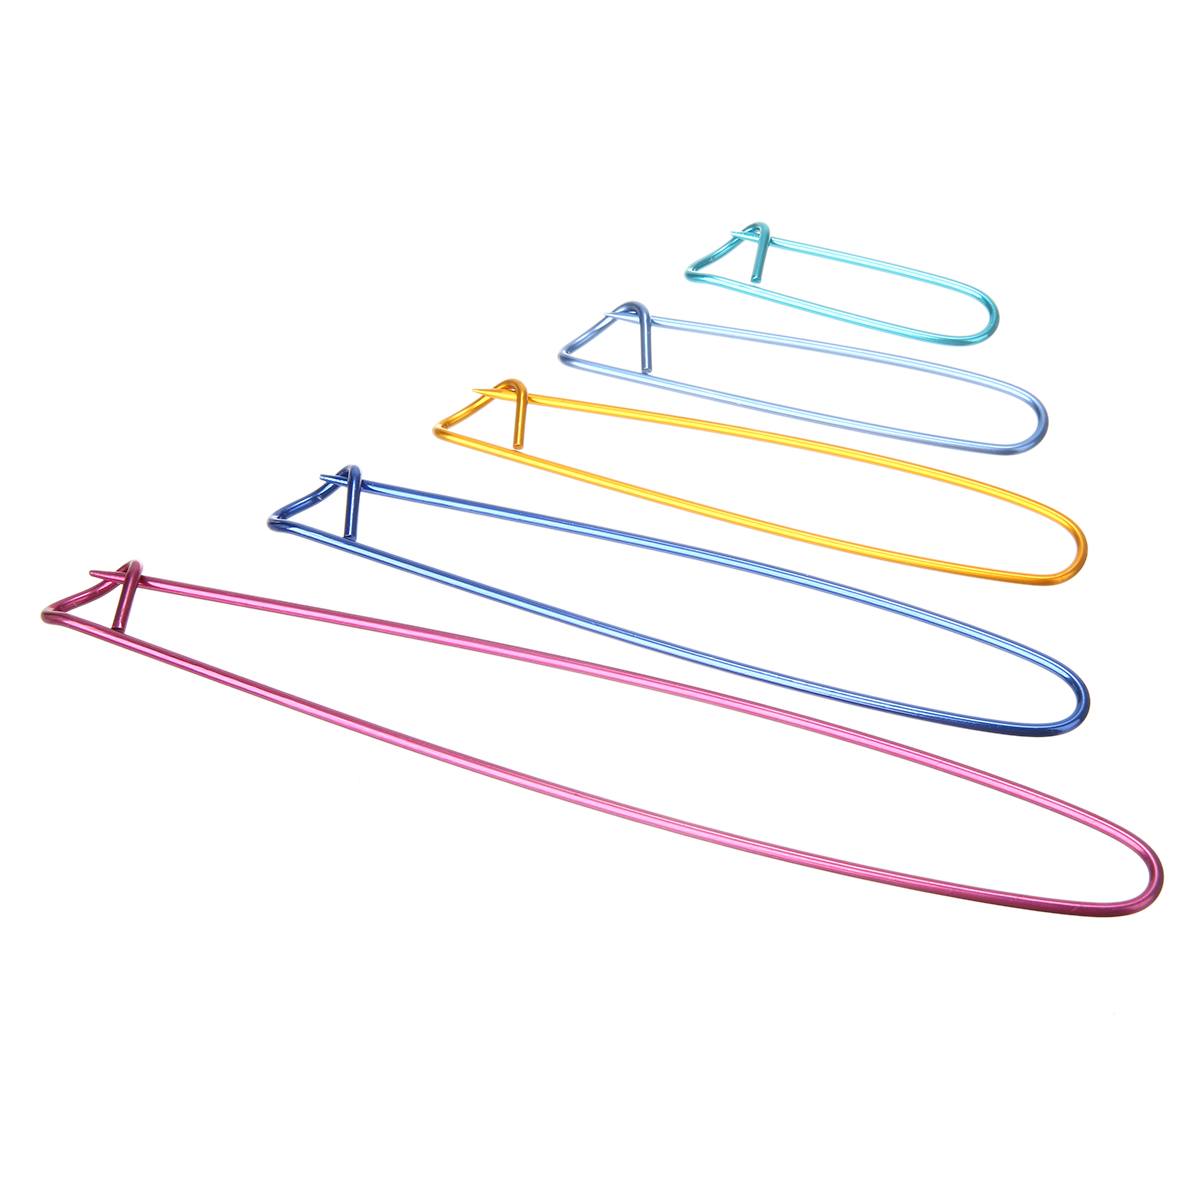 10Pcs Aluminum Knit Holders Knitting Needles Markers Crochet Hook Locking Stitch Seam DIY Crafts Sewing Tool for Making Sweater